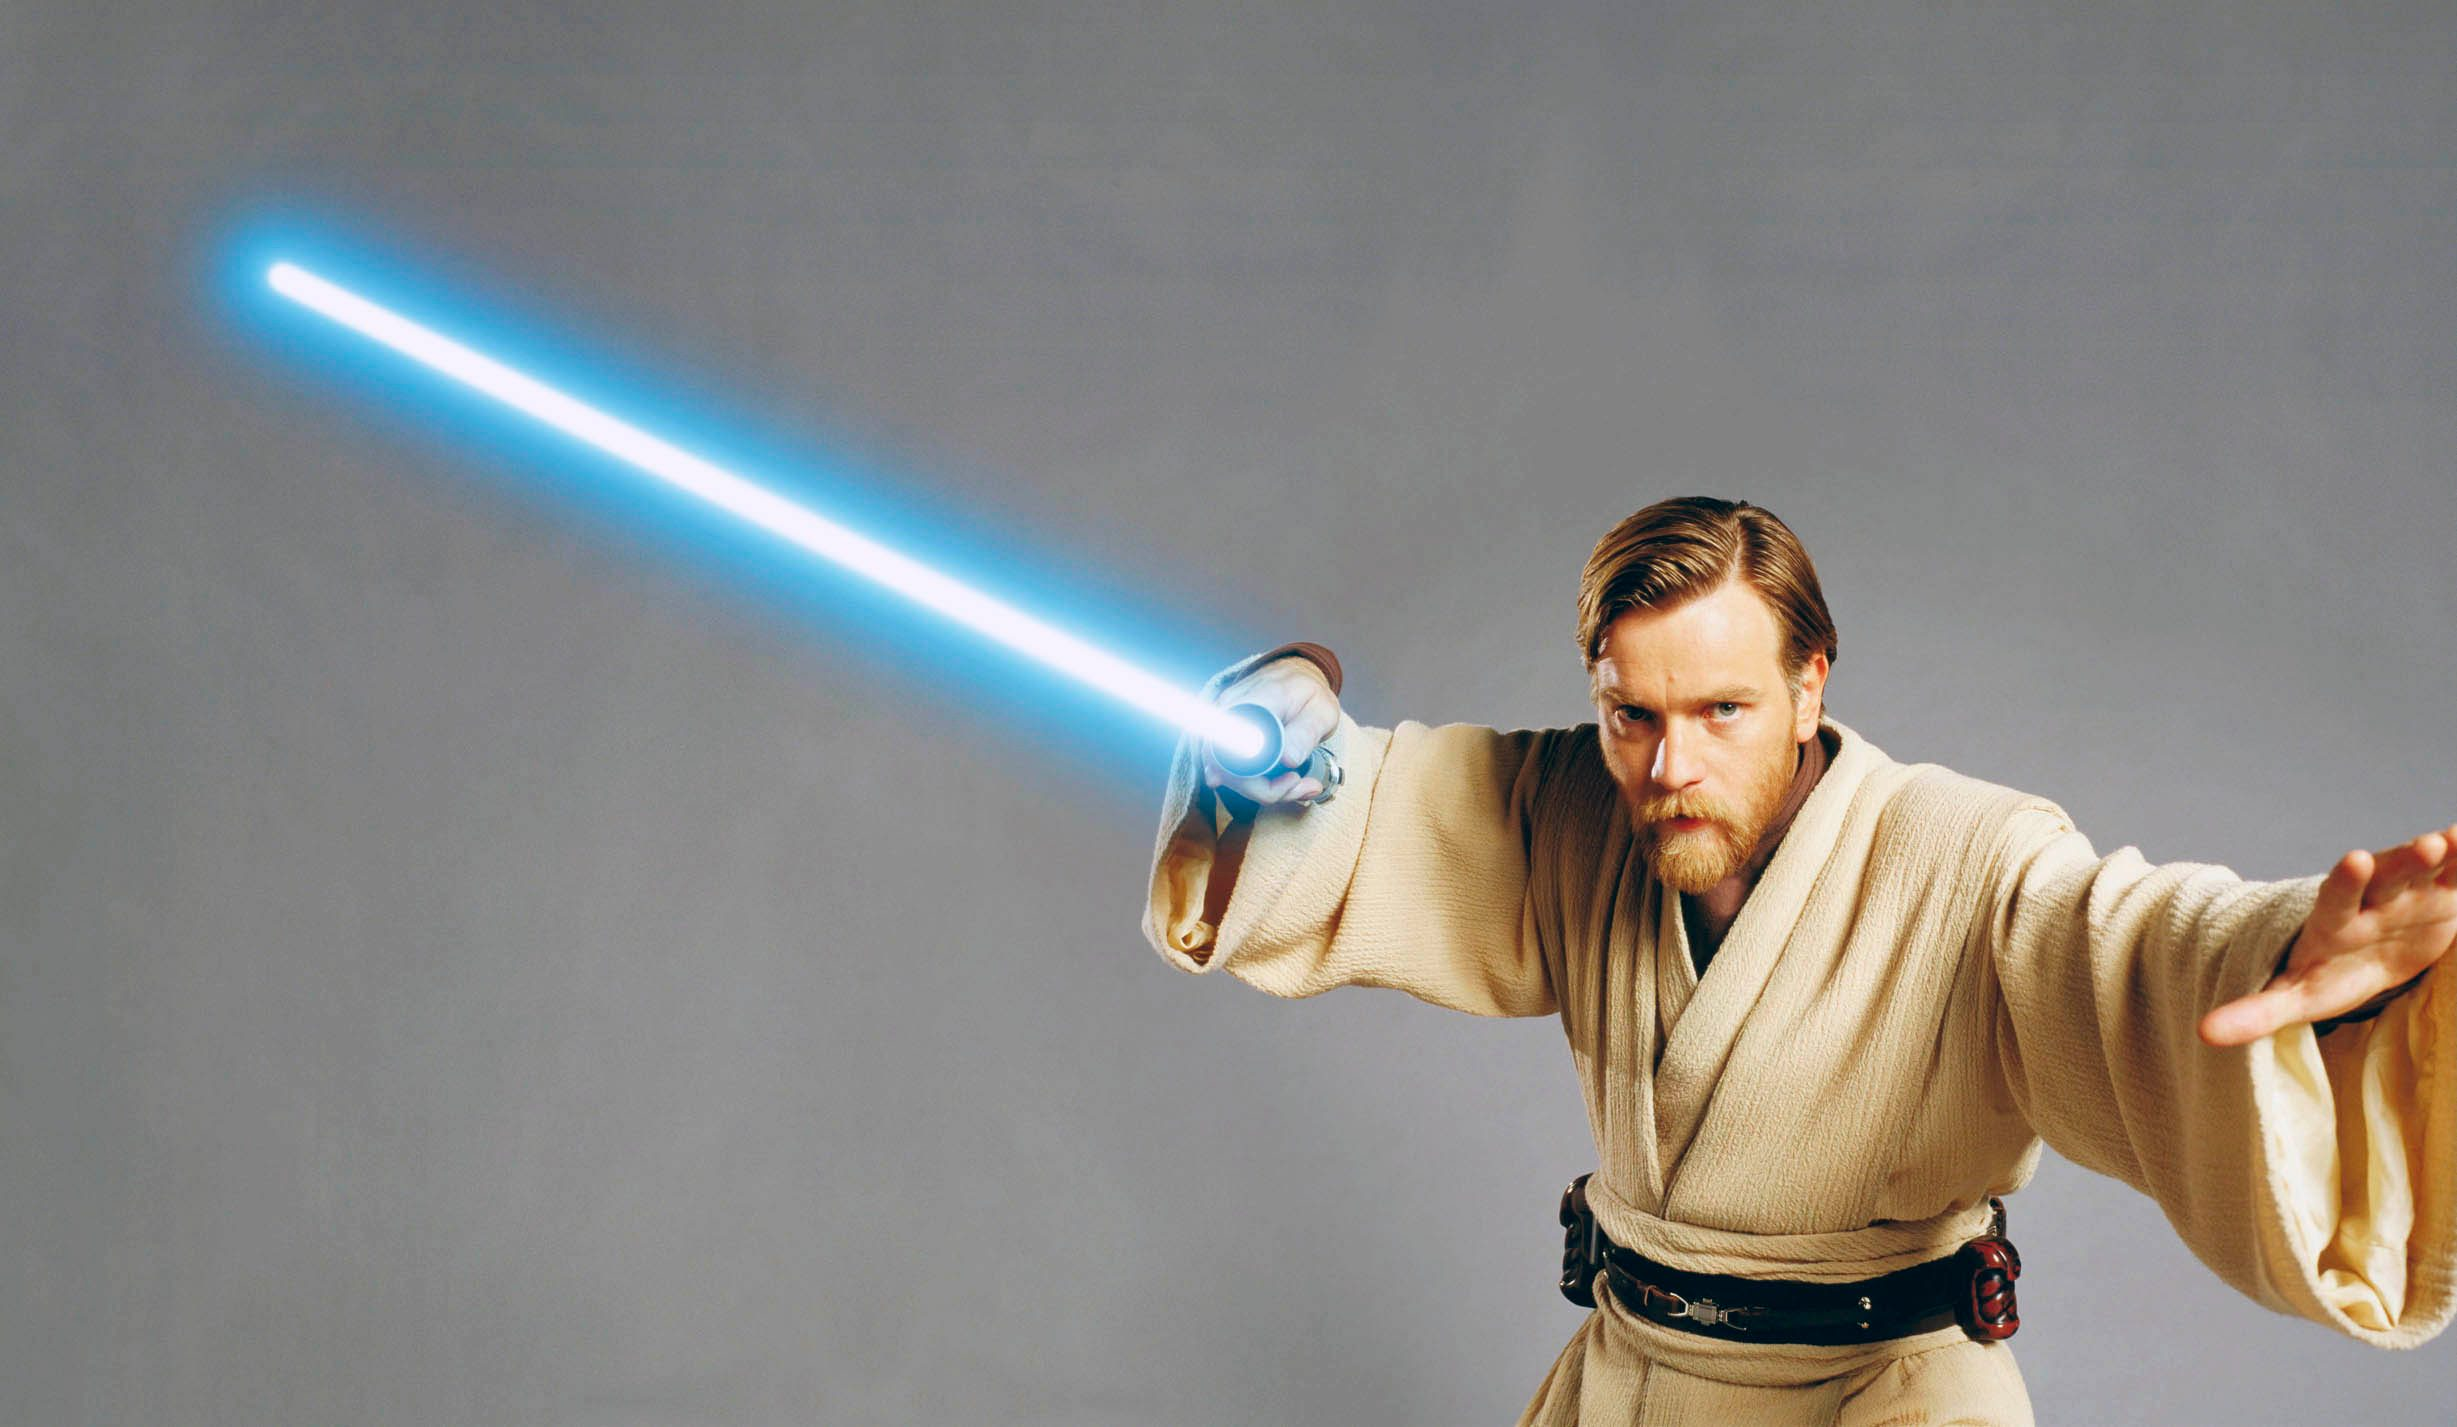 Obi Wan TV show confirmed: when is the release date on